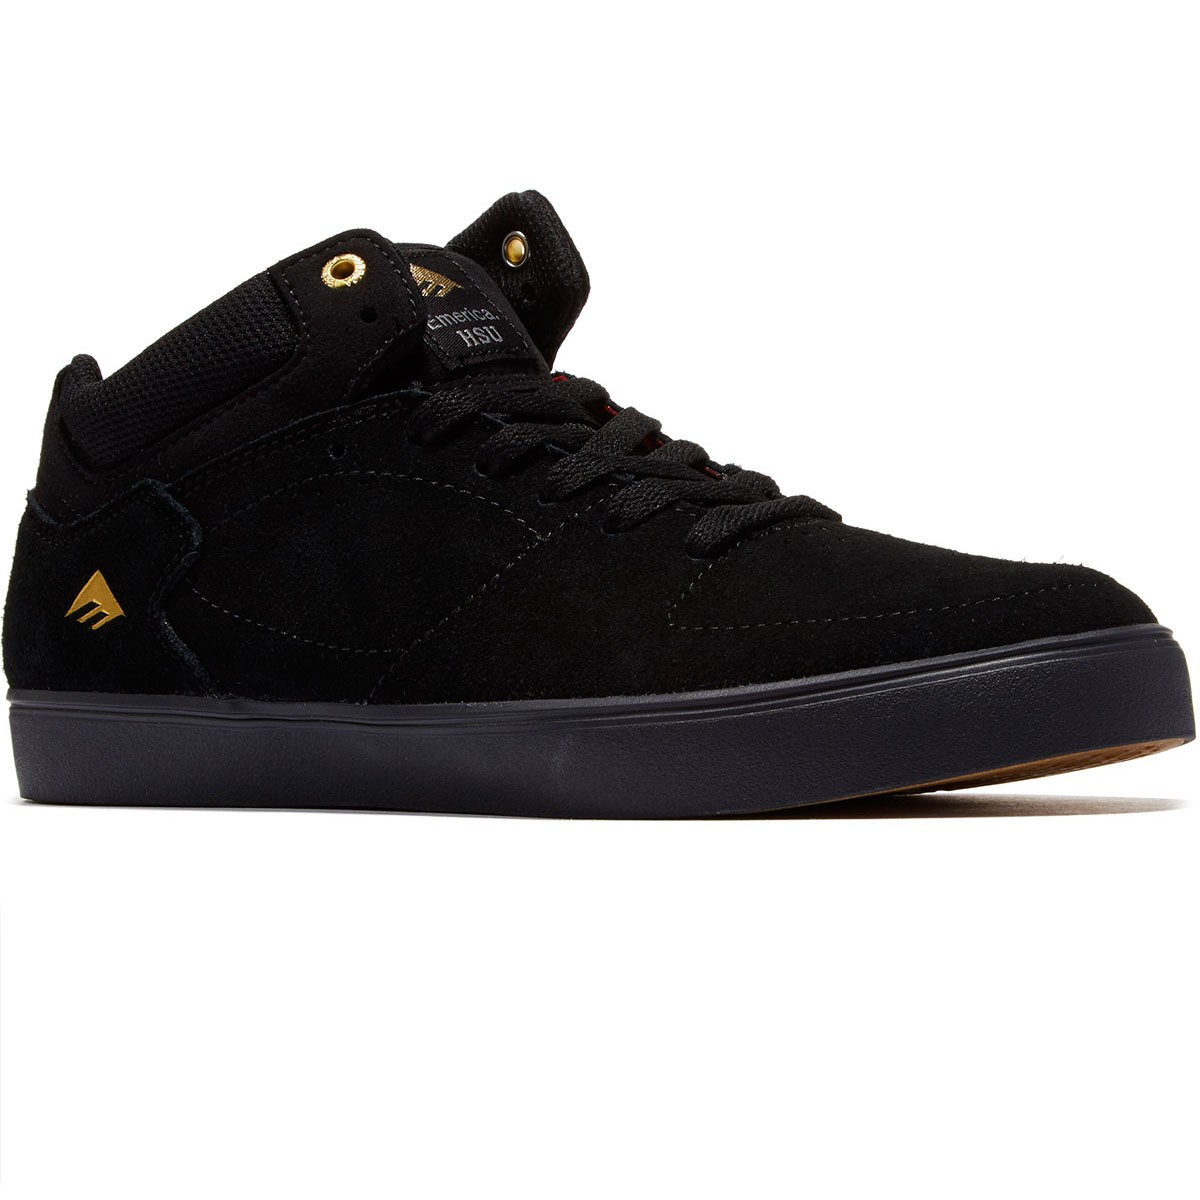 Emerica Shoes Size